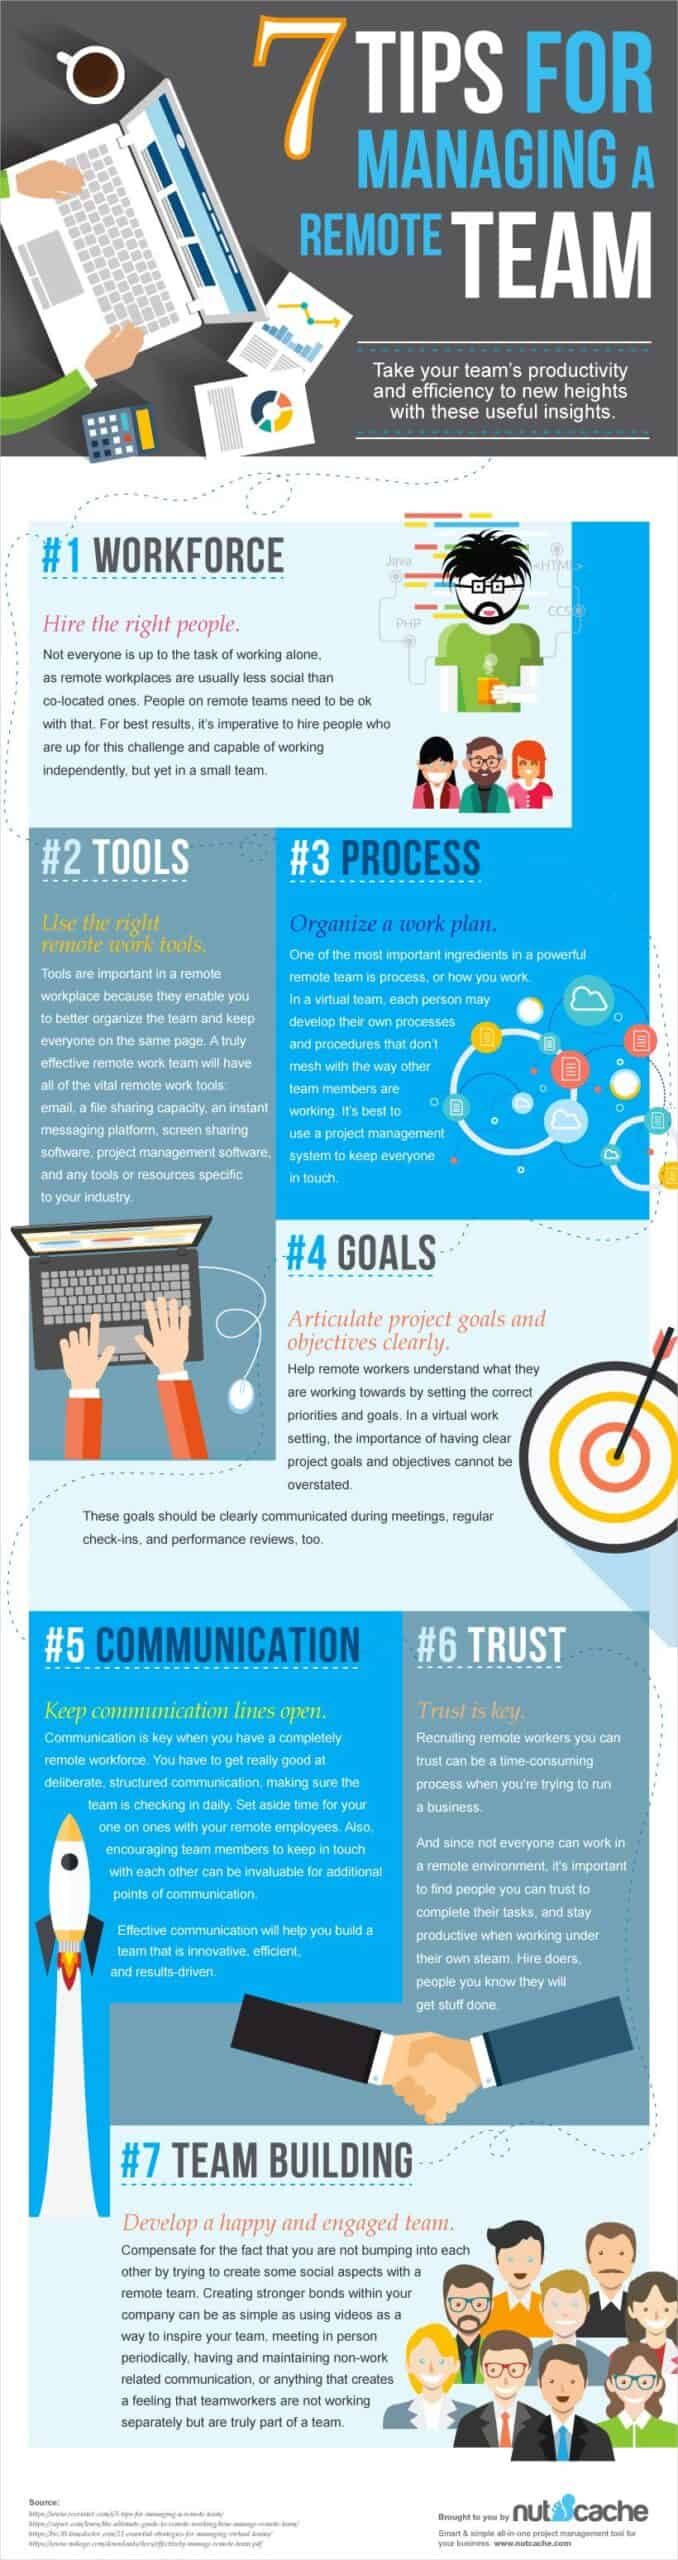 Check out these tips to manage a remote working team, in this great infographic!